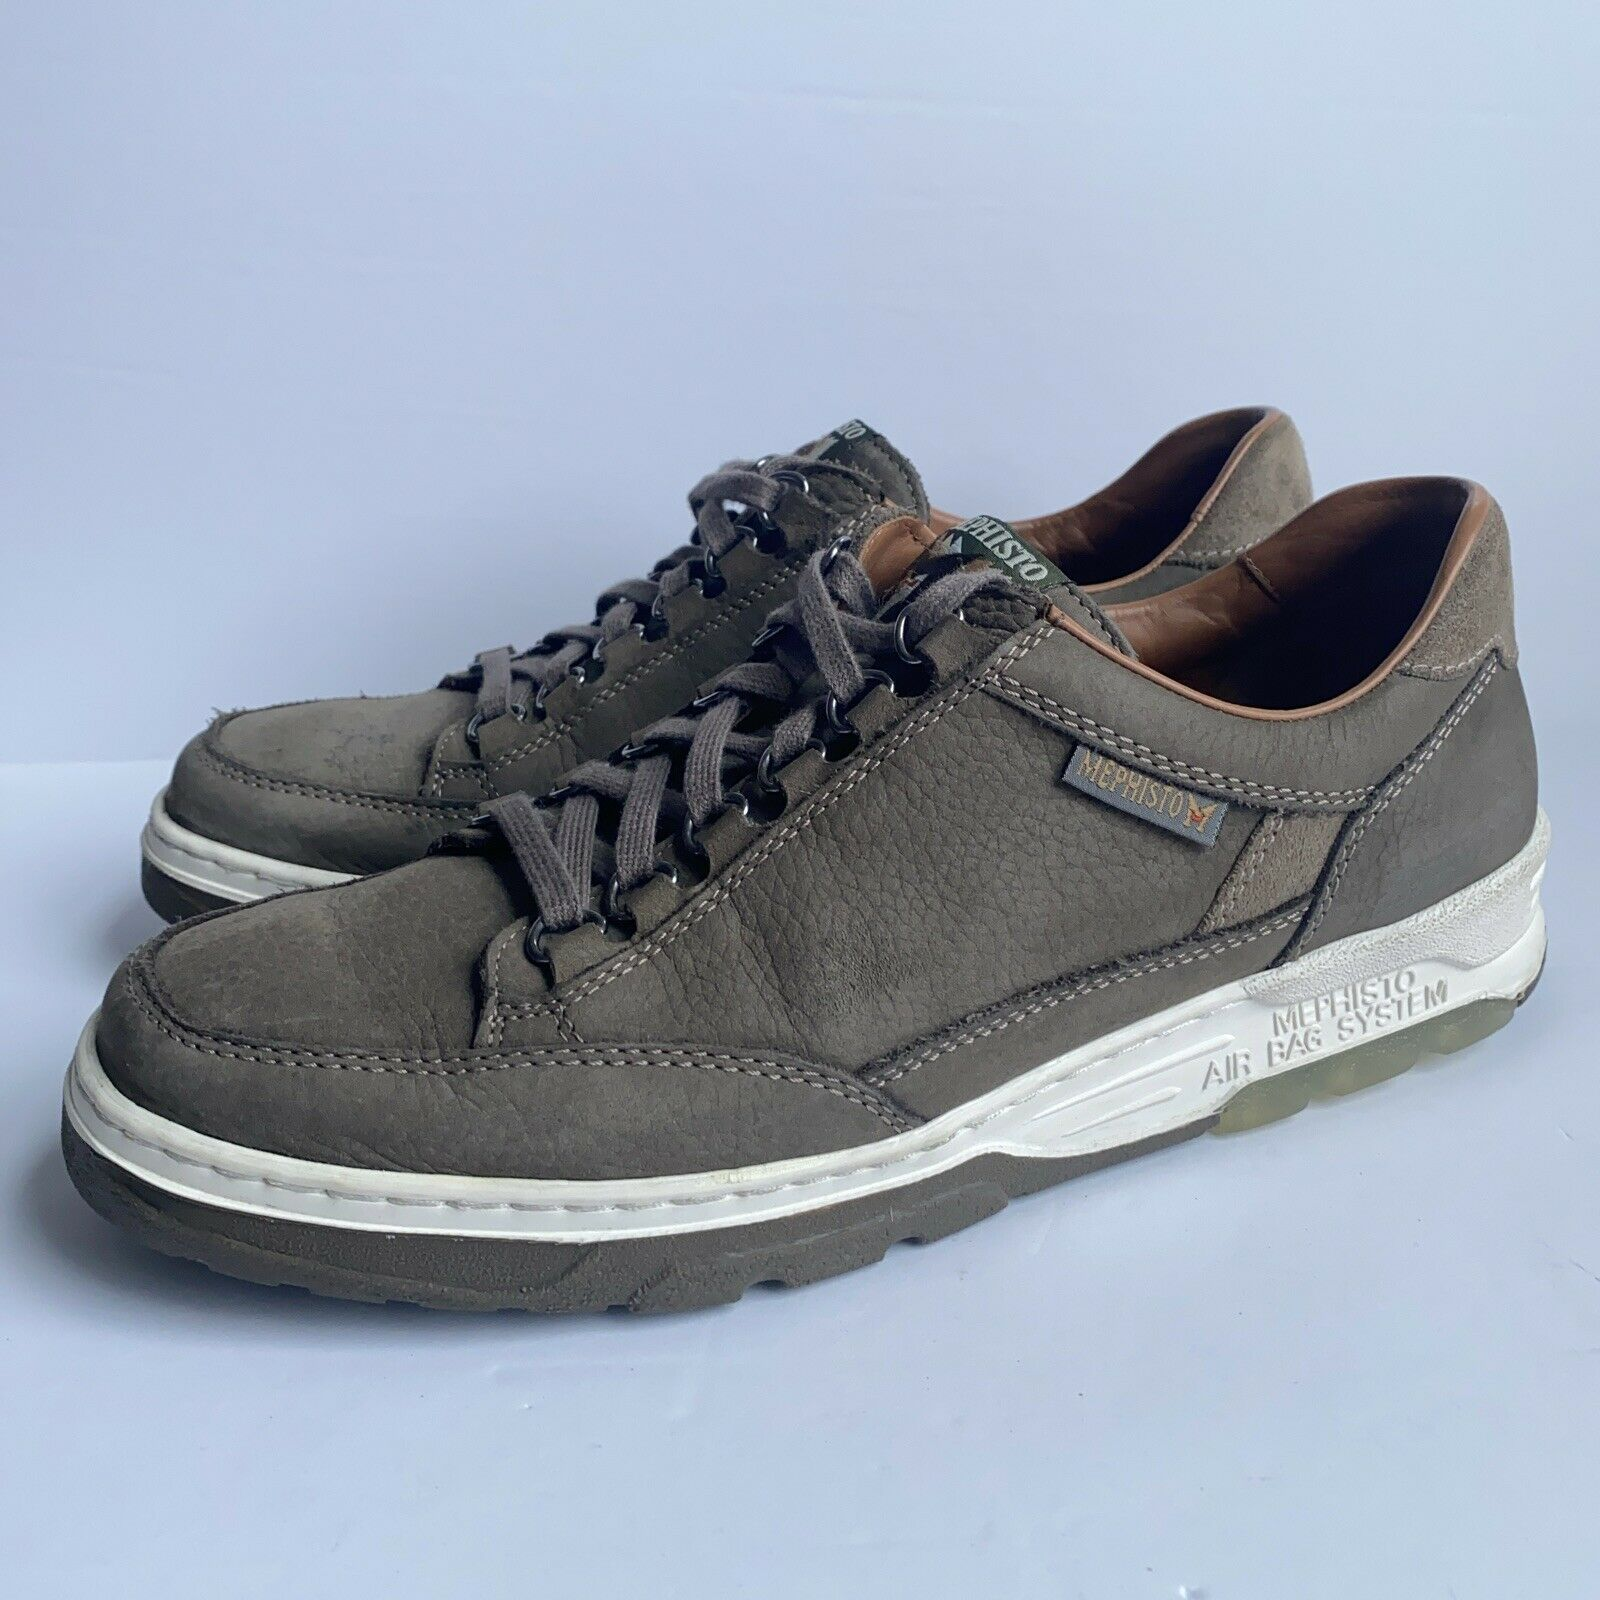 Mephisto - Mick - Taupe Brown Gray Sport Buck Fashion Sneaker - Men's Size 11